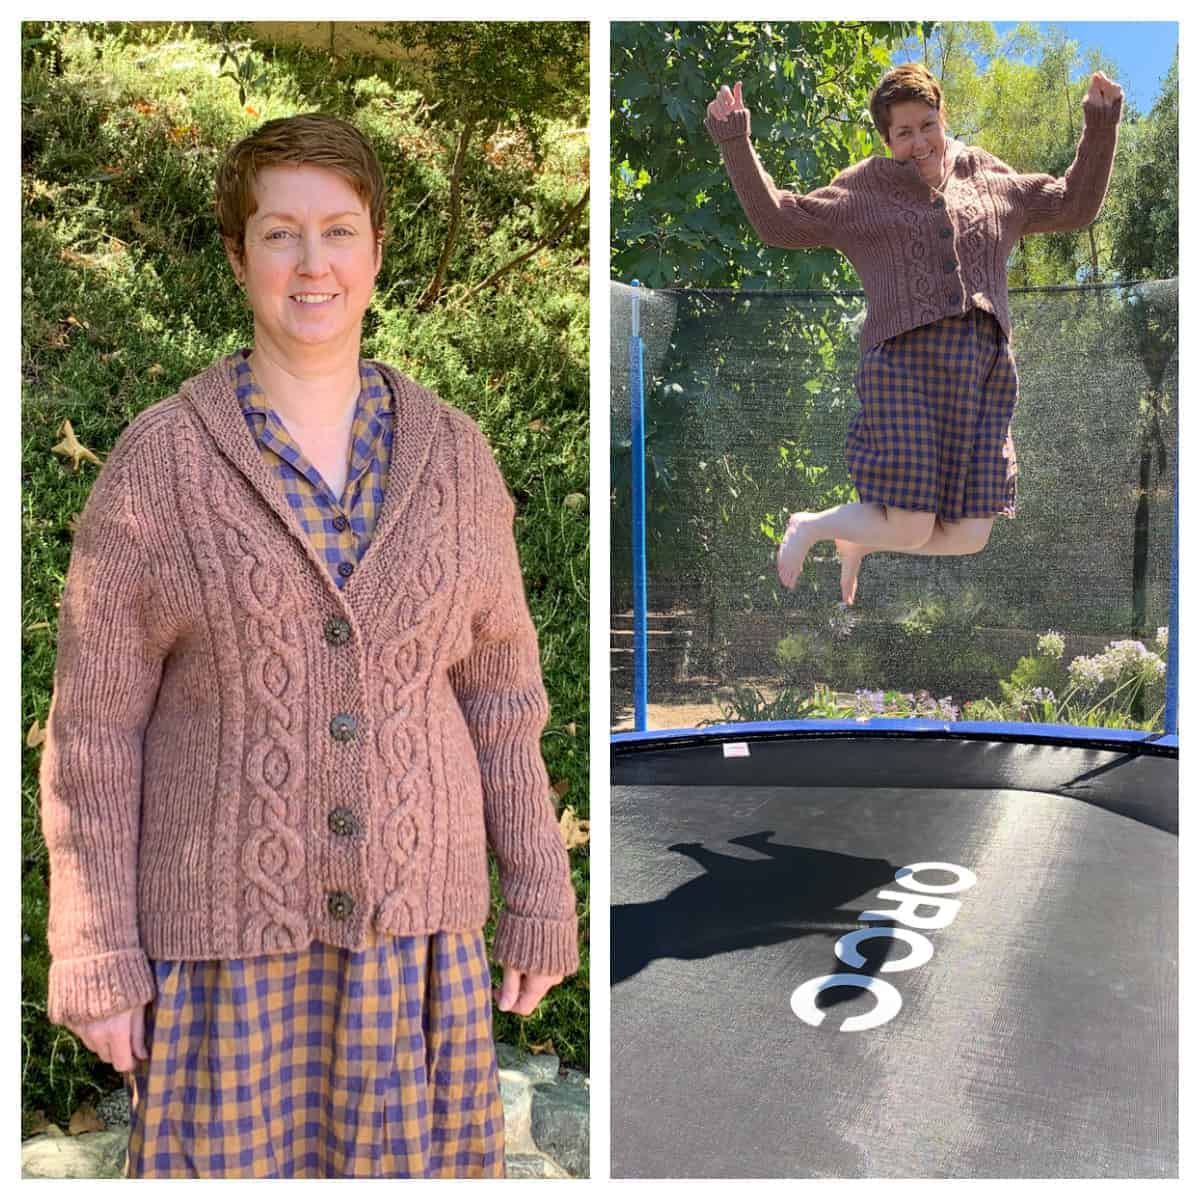 A woman wearing a brown cabled sweater, jumping on a trampoline.